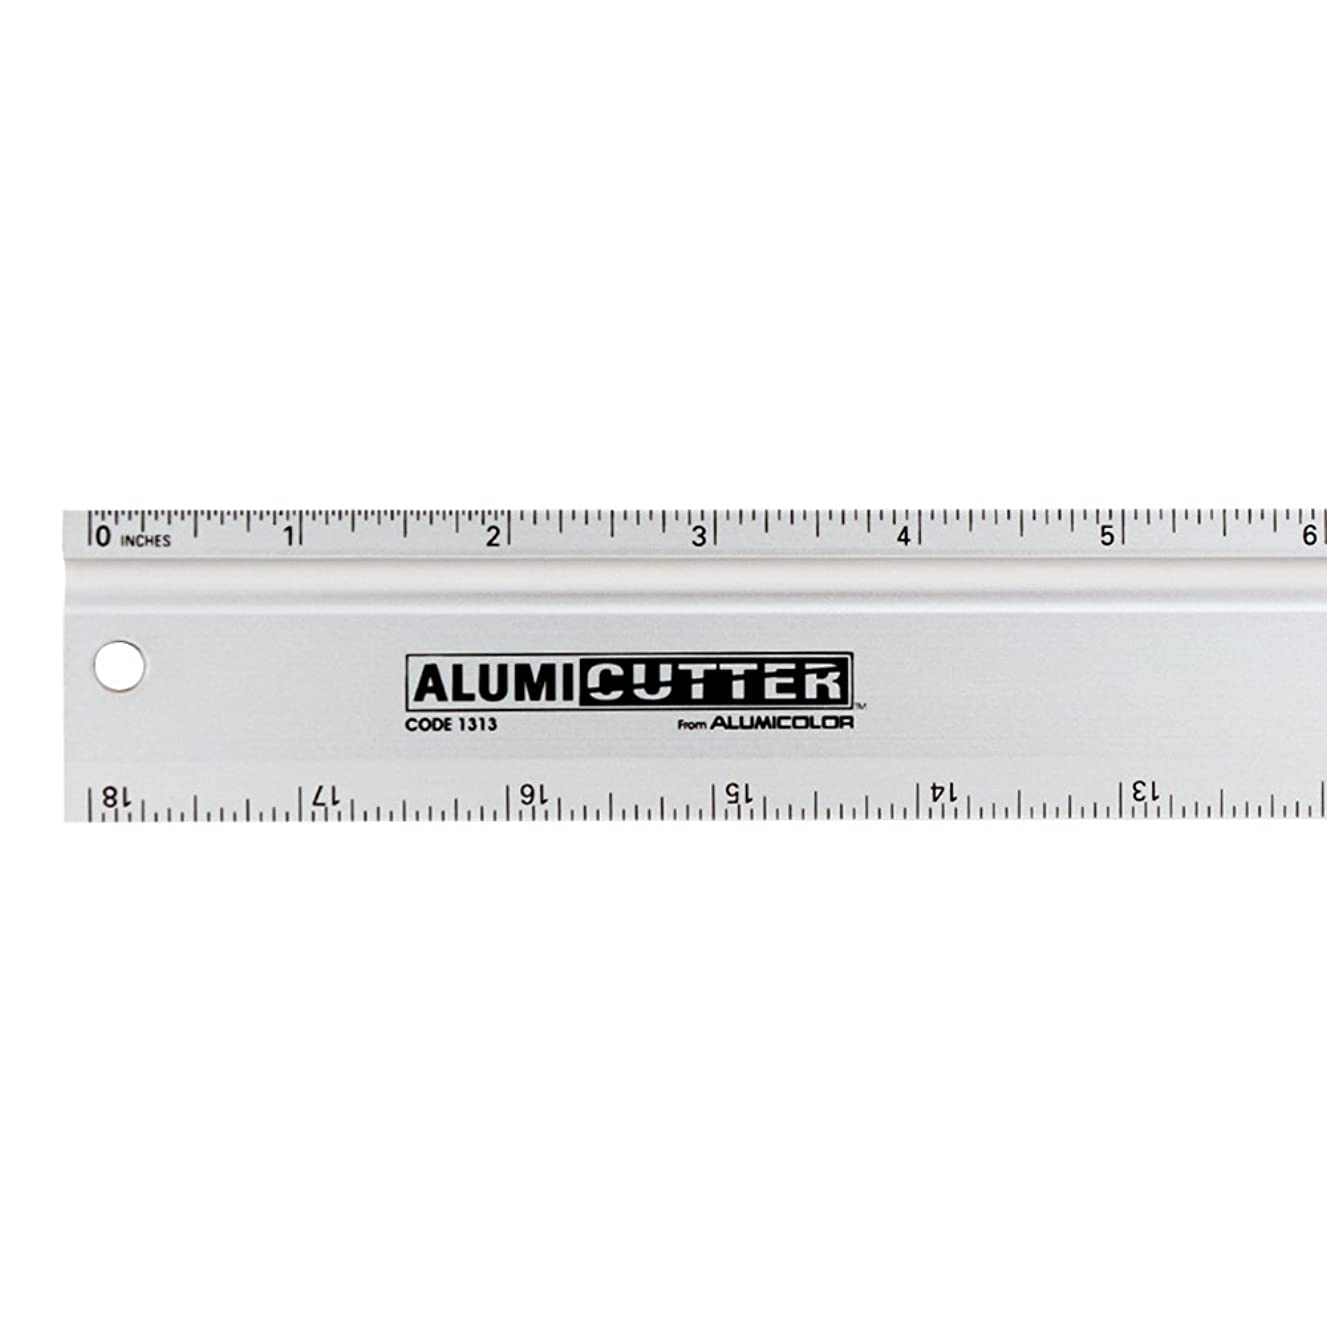 Alumicolor Alumicutter, Safety Ruler and Straight Edge, Aluminum, 12 inches, Silver (1312-1)